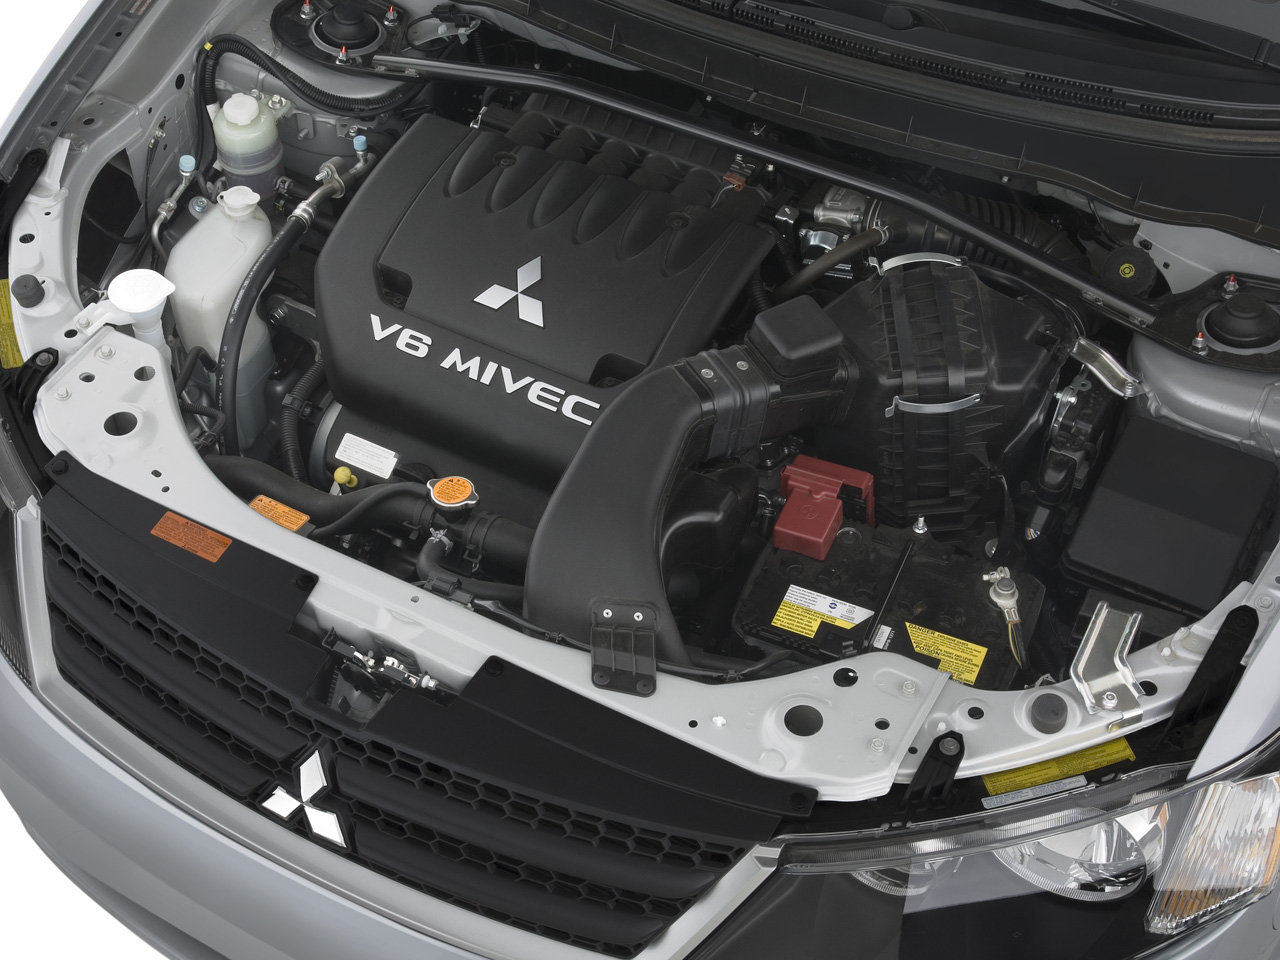 Mitsubishi Outlander engine #1